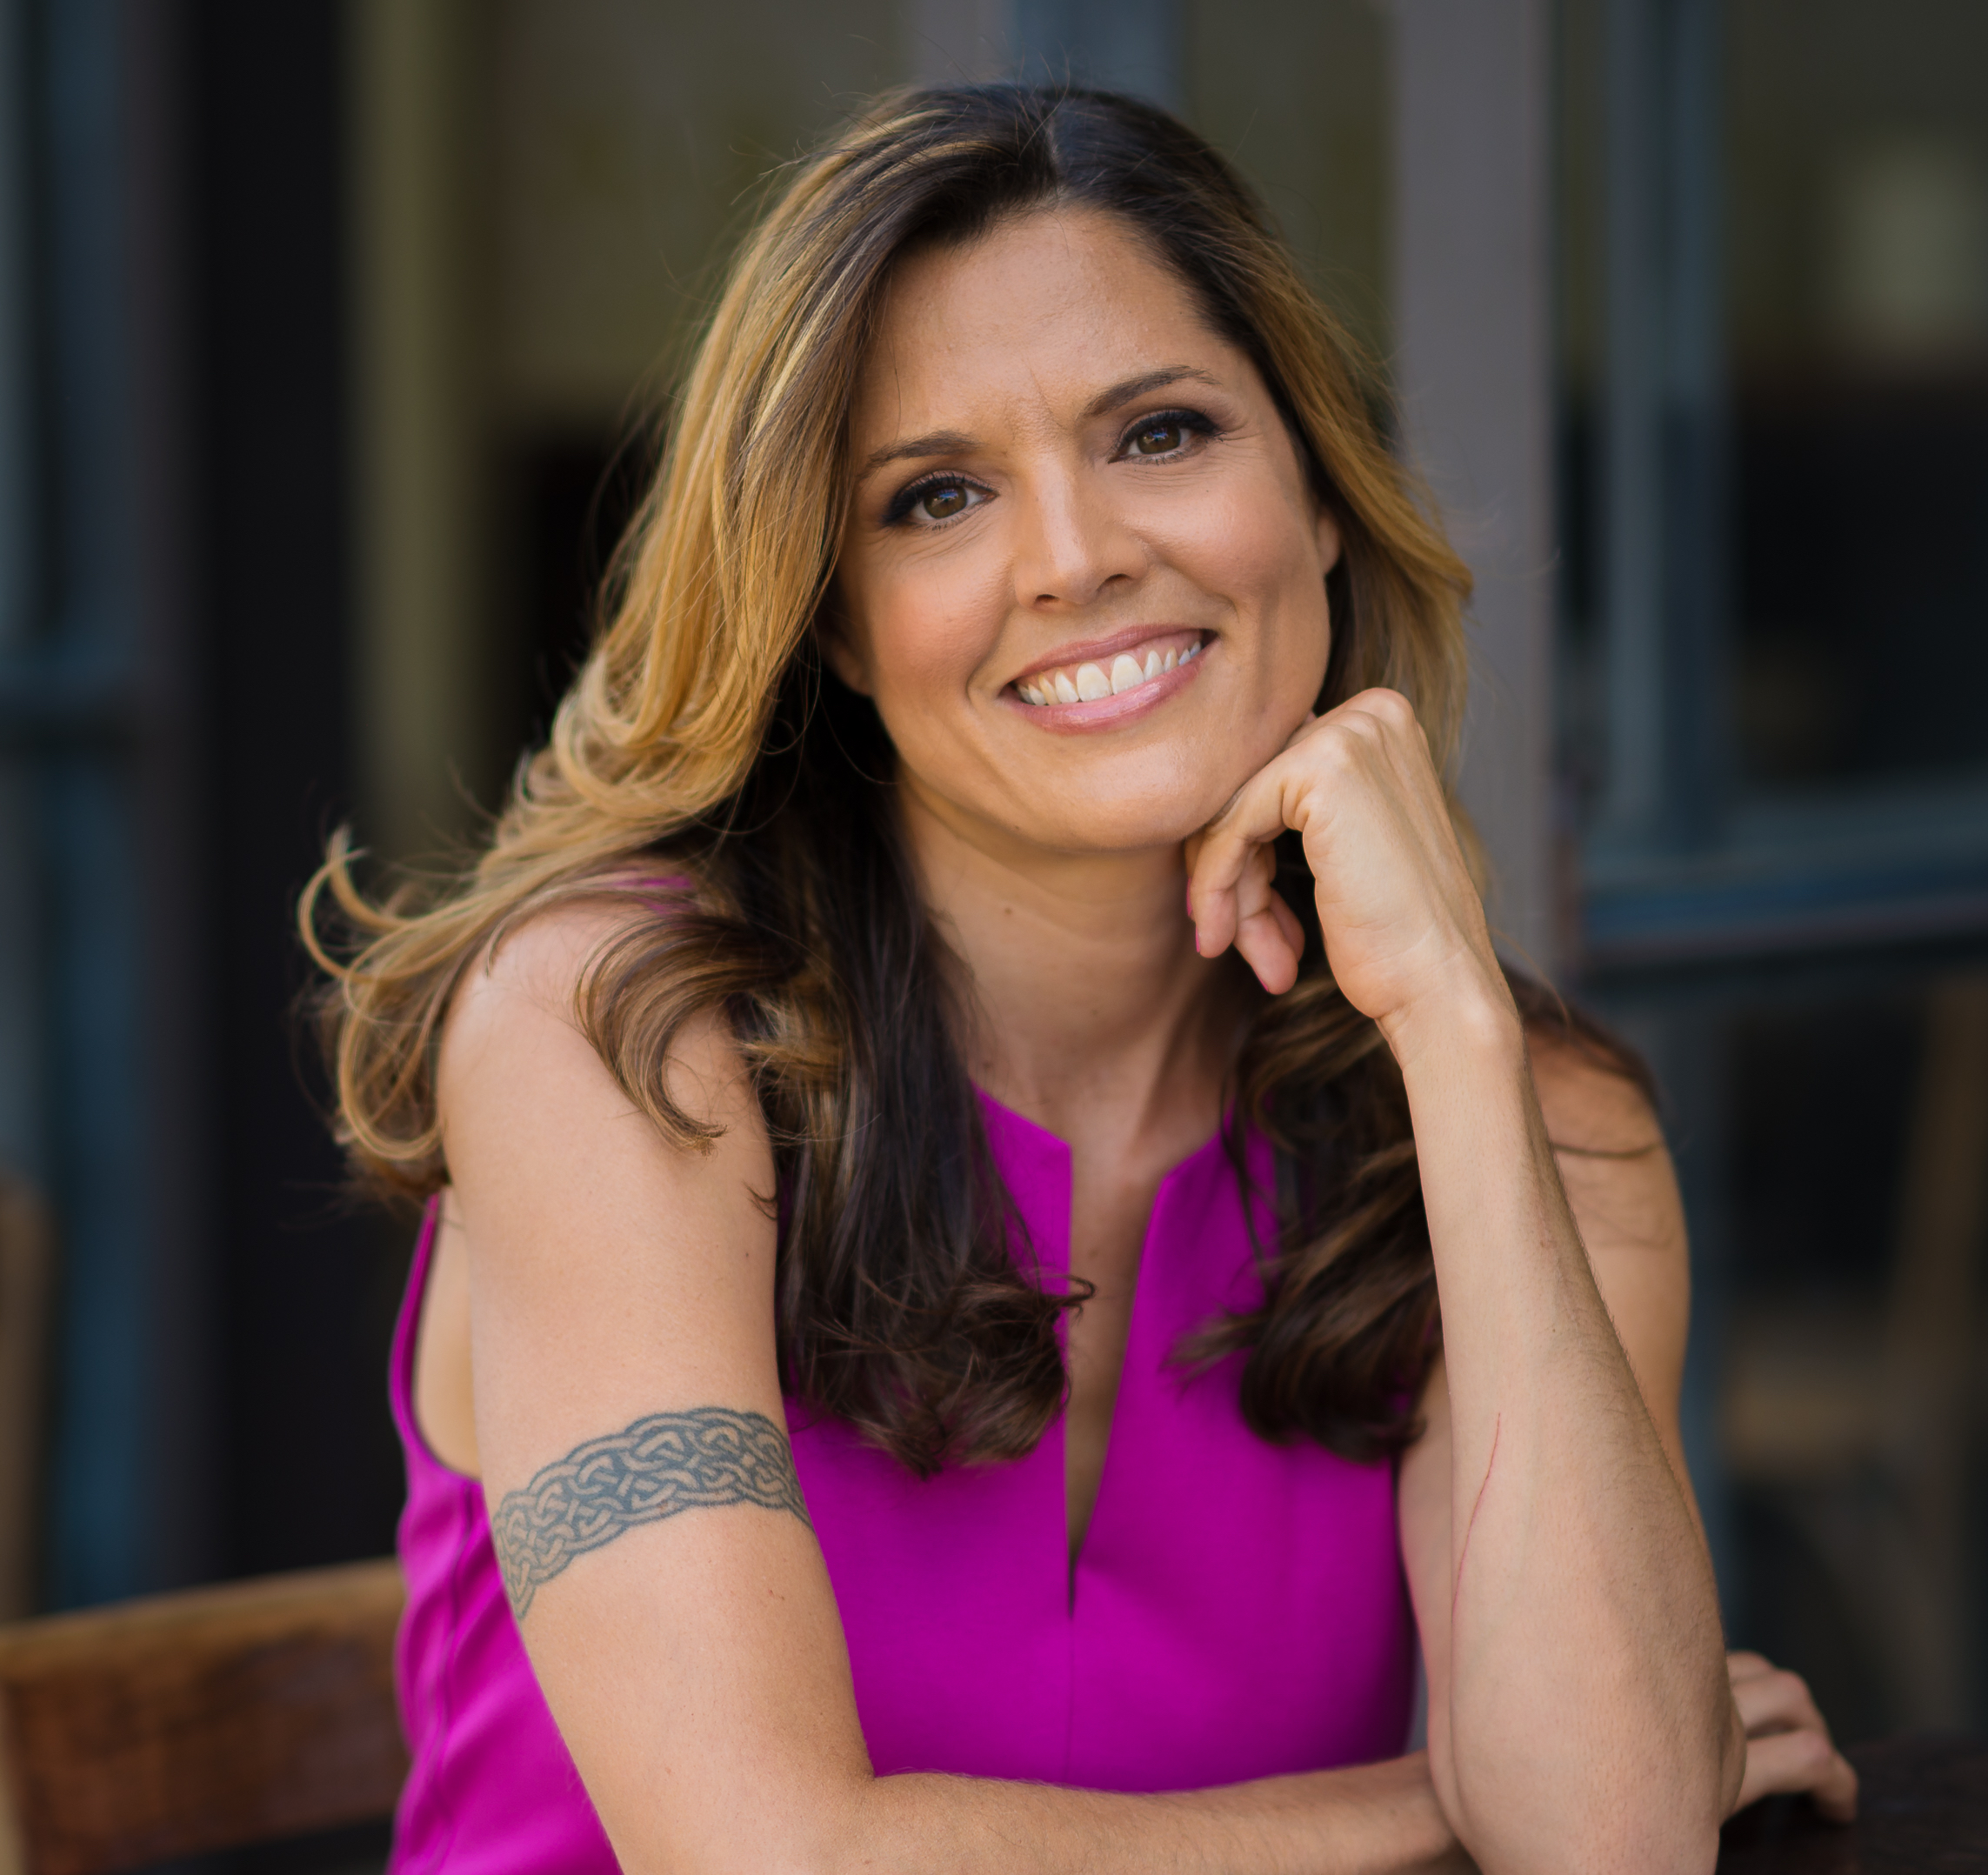 GABBY (a.k.a. Gabrielle Pelicci, Ph.D.) is the author of Blissful Business: A Gorgeous Guide to Creating Your Dream Career in Health & Wellness and Founder of Women-in-Wellness.com. Her writing has appeared in places such as Huffington Post, Elephant Journal and Natural Awakenings Magazine